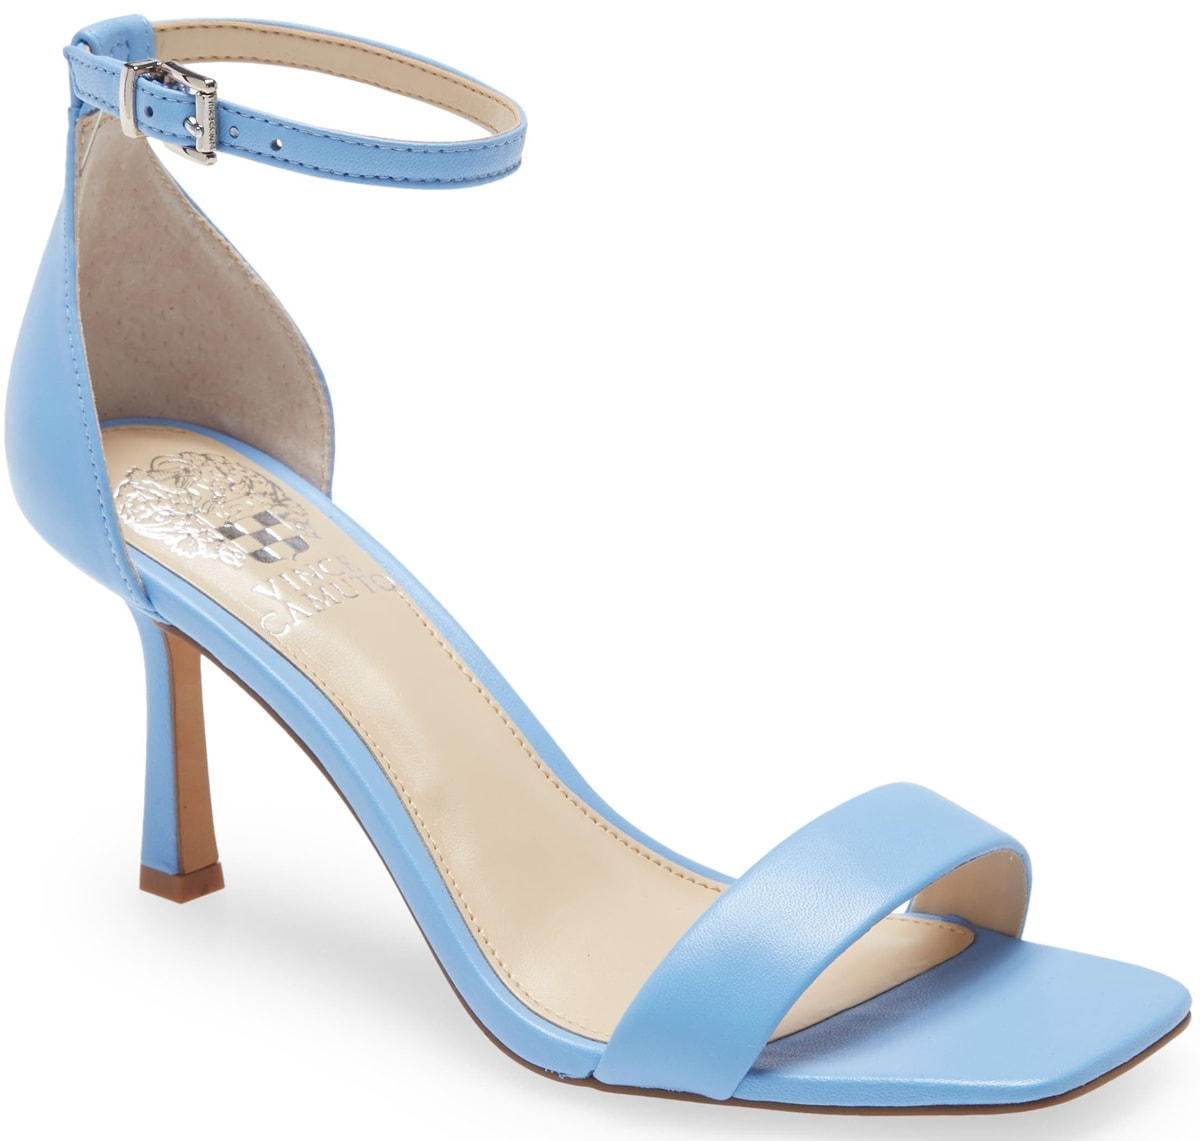 Simple and chic, this blue ankle-strap sandal from Vince Camuto with a square toe and a flared heel adds minimalist '90s vibes to any ensemble